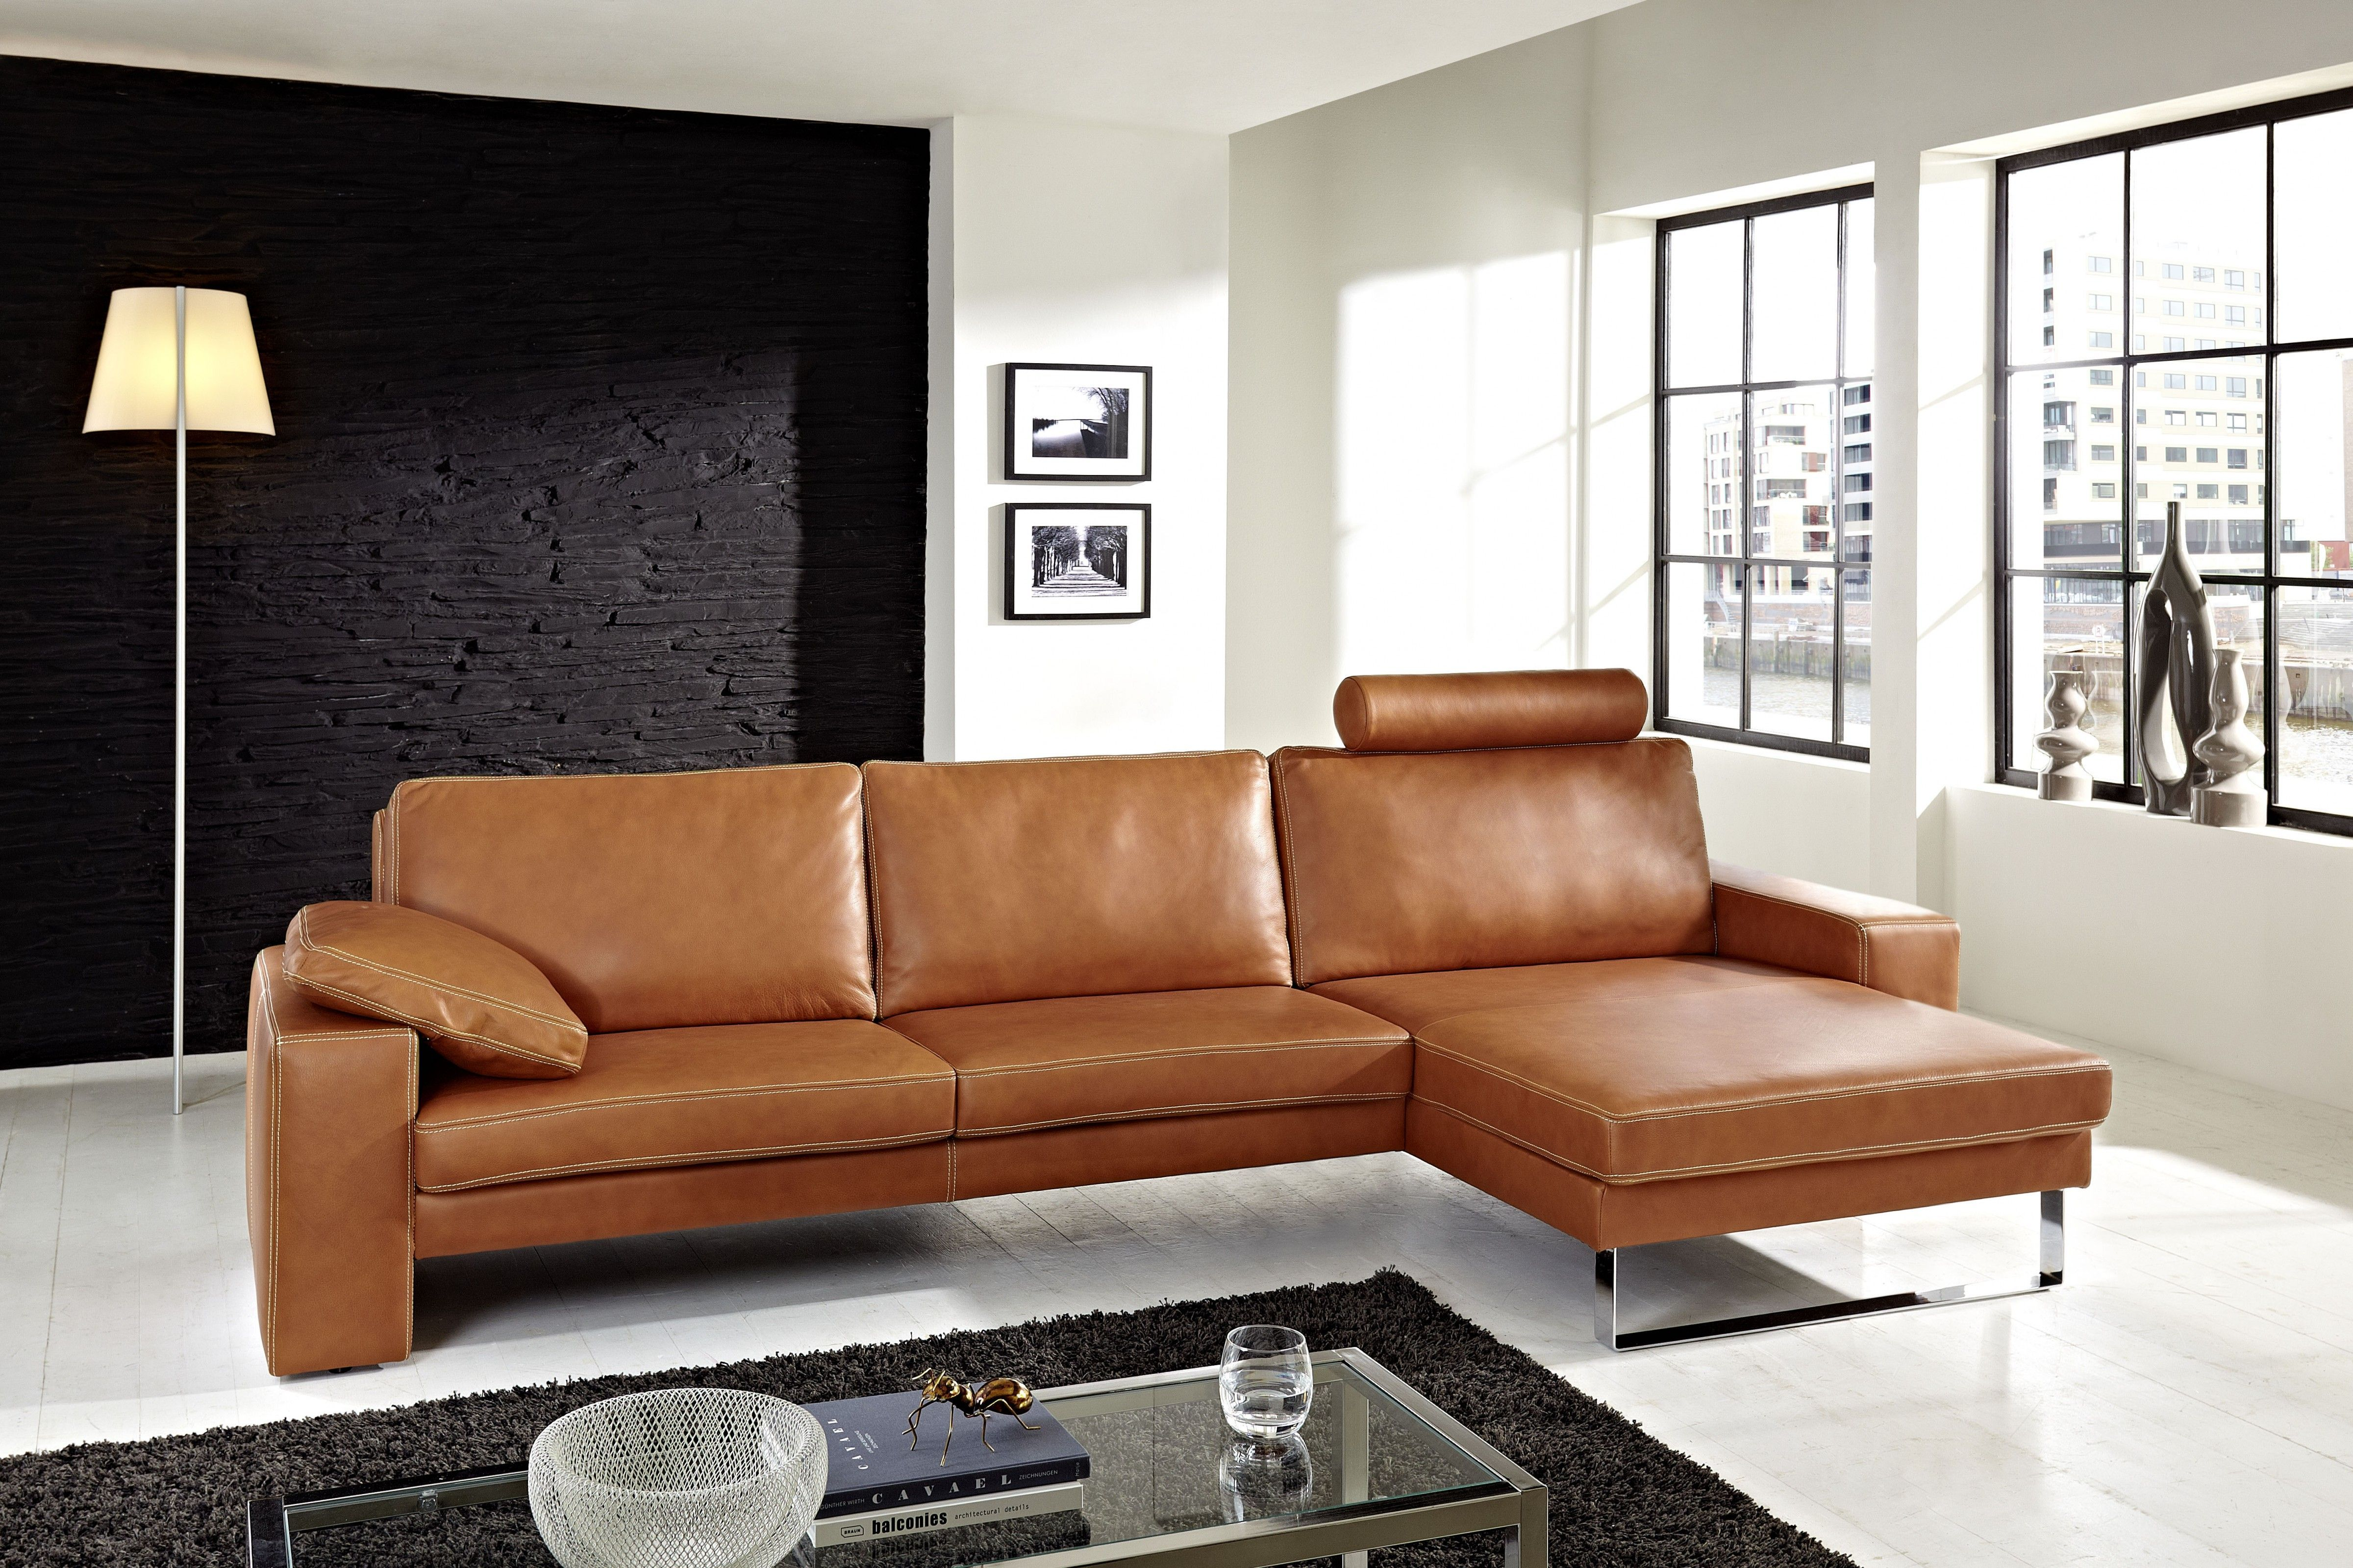 Image Result For Cognac Sofa Welche